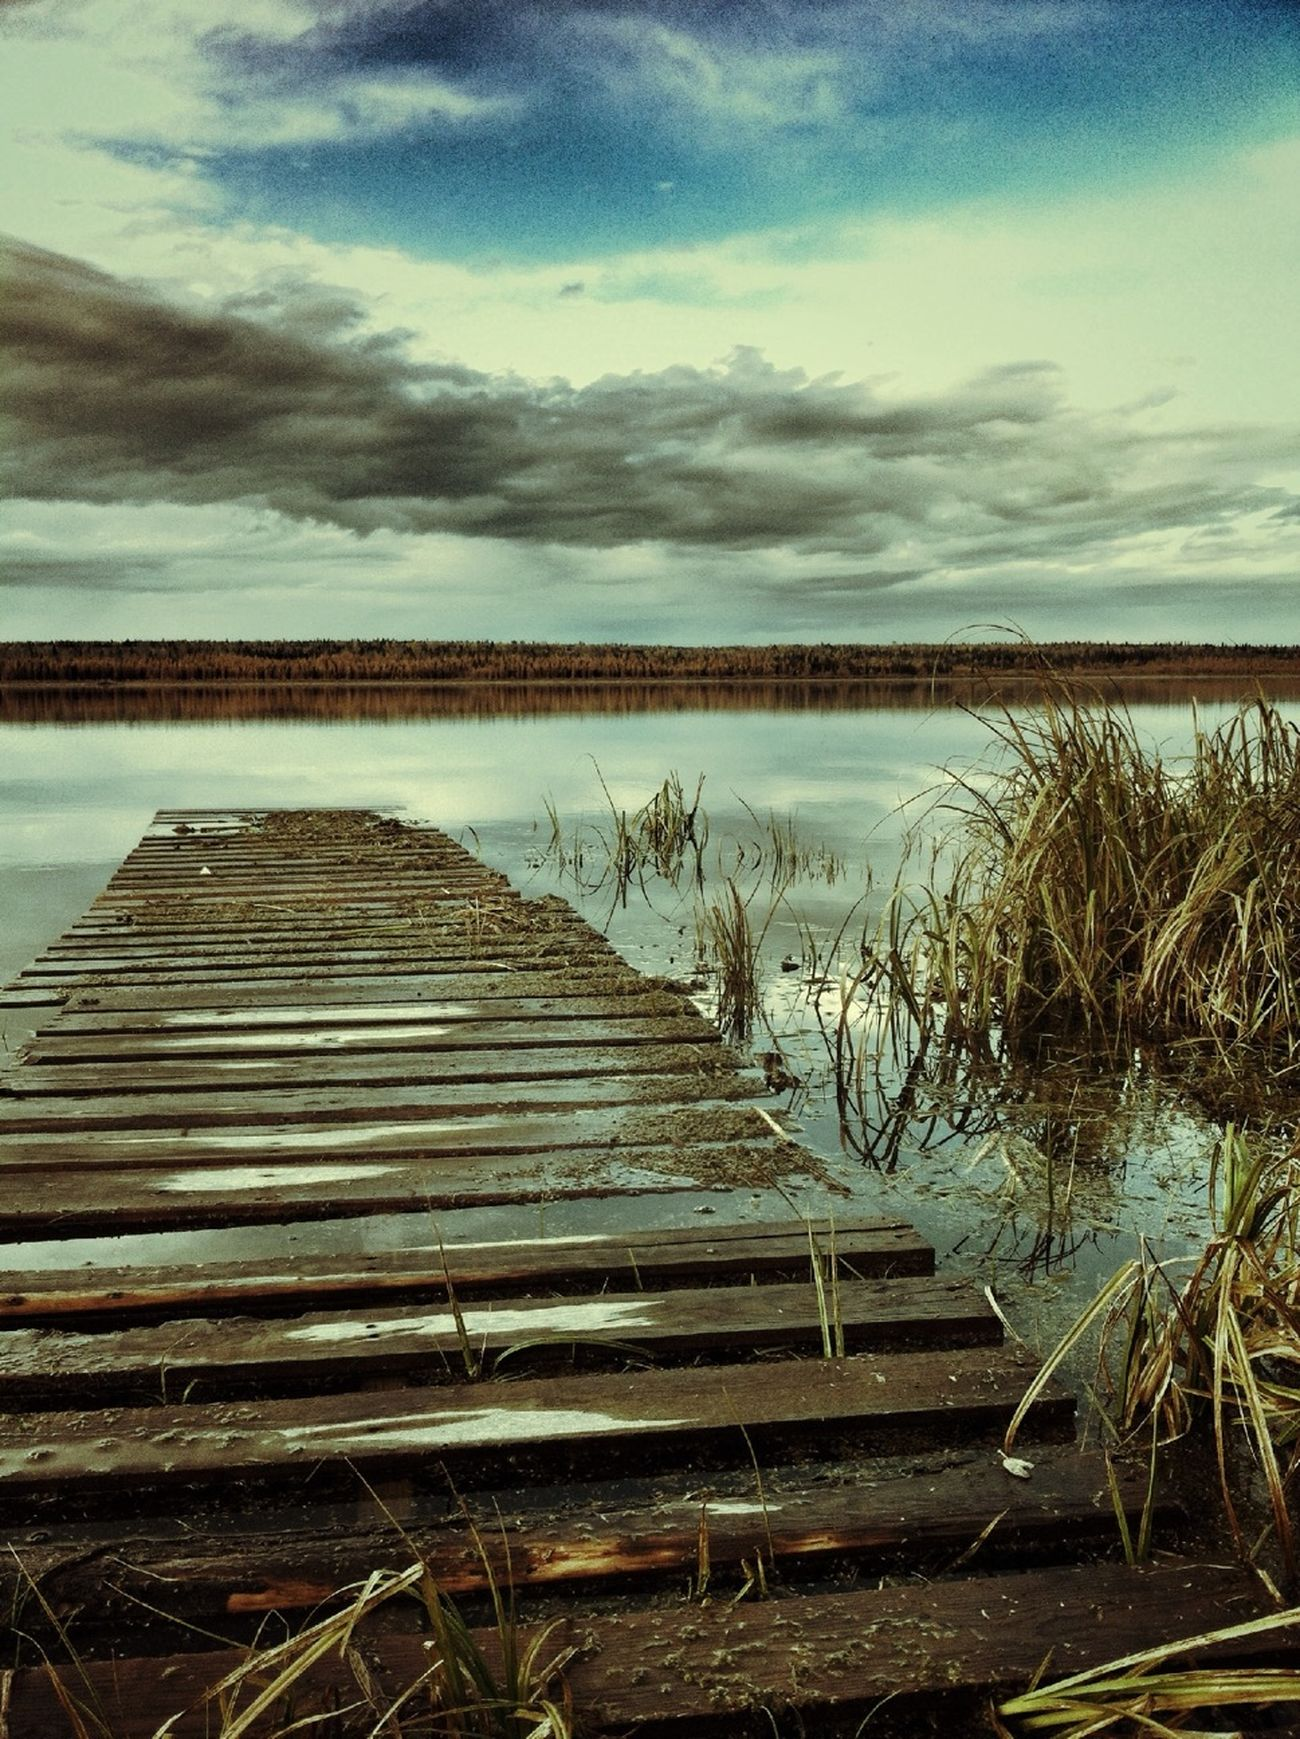 A homemade dock I captured this last summer